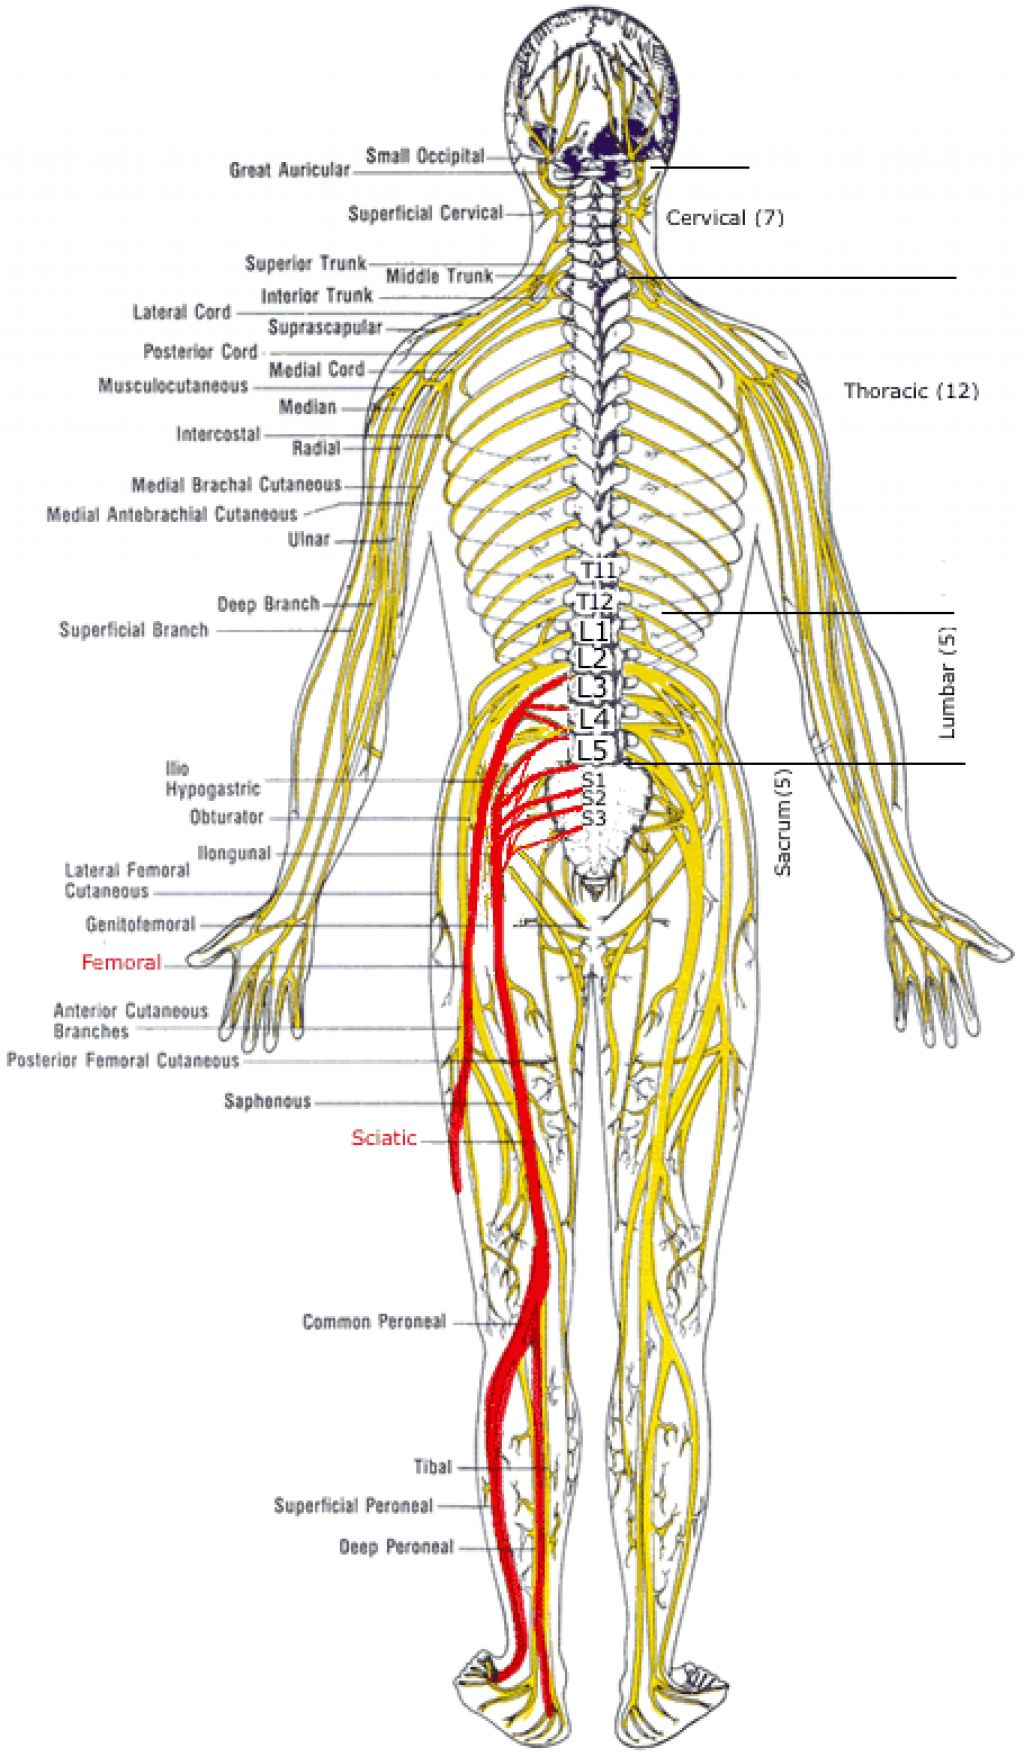 Spine nerves diagram image collections diagram design ideas spinal nerves diagram image collections diagram design ideas spine nerves diagram gallery diagram design ideas spine pooptronica Images